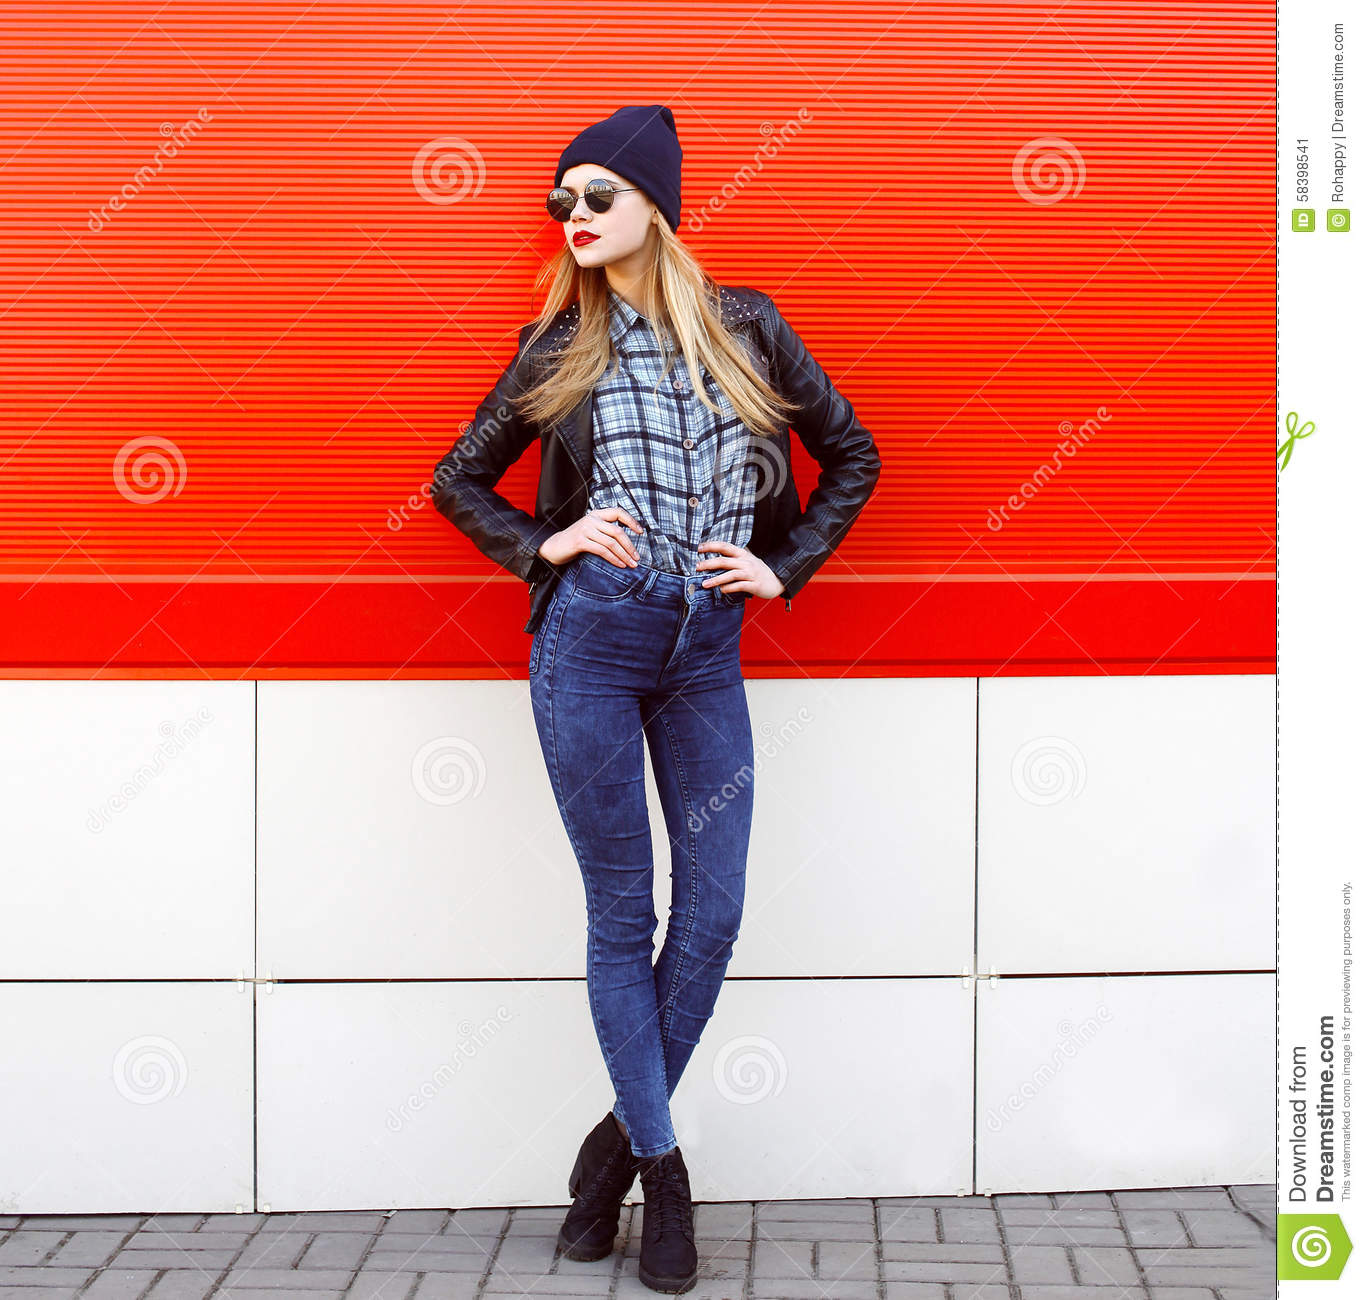 Street Fashion Concept Pretty Young Slim Woman Stock Image Image 58398541